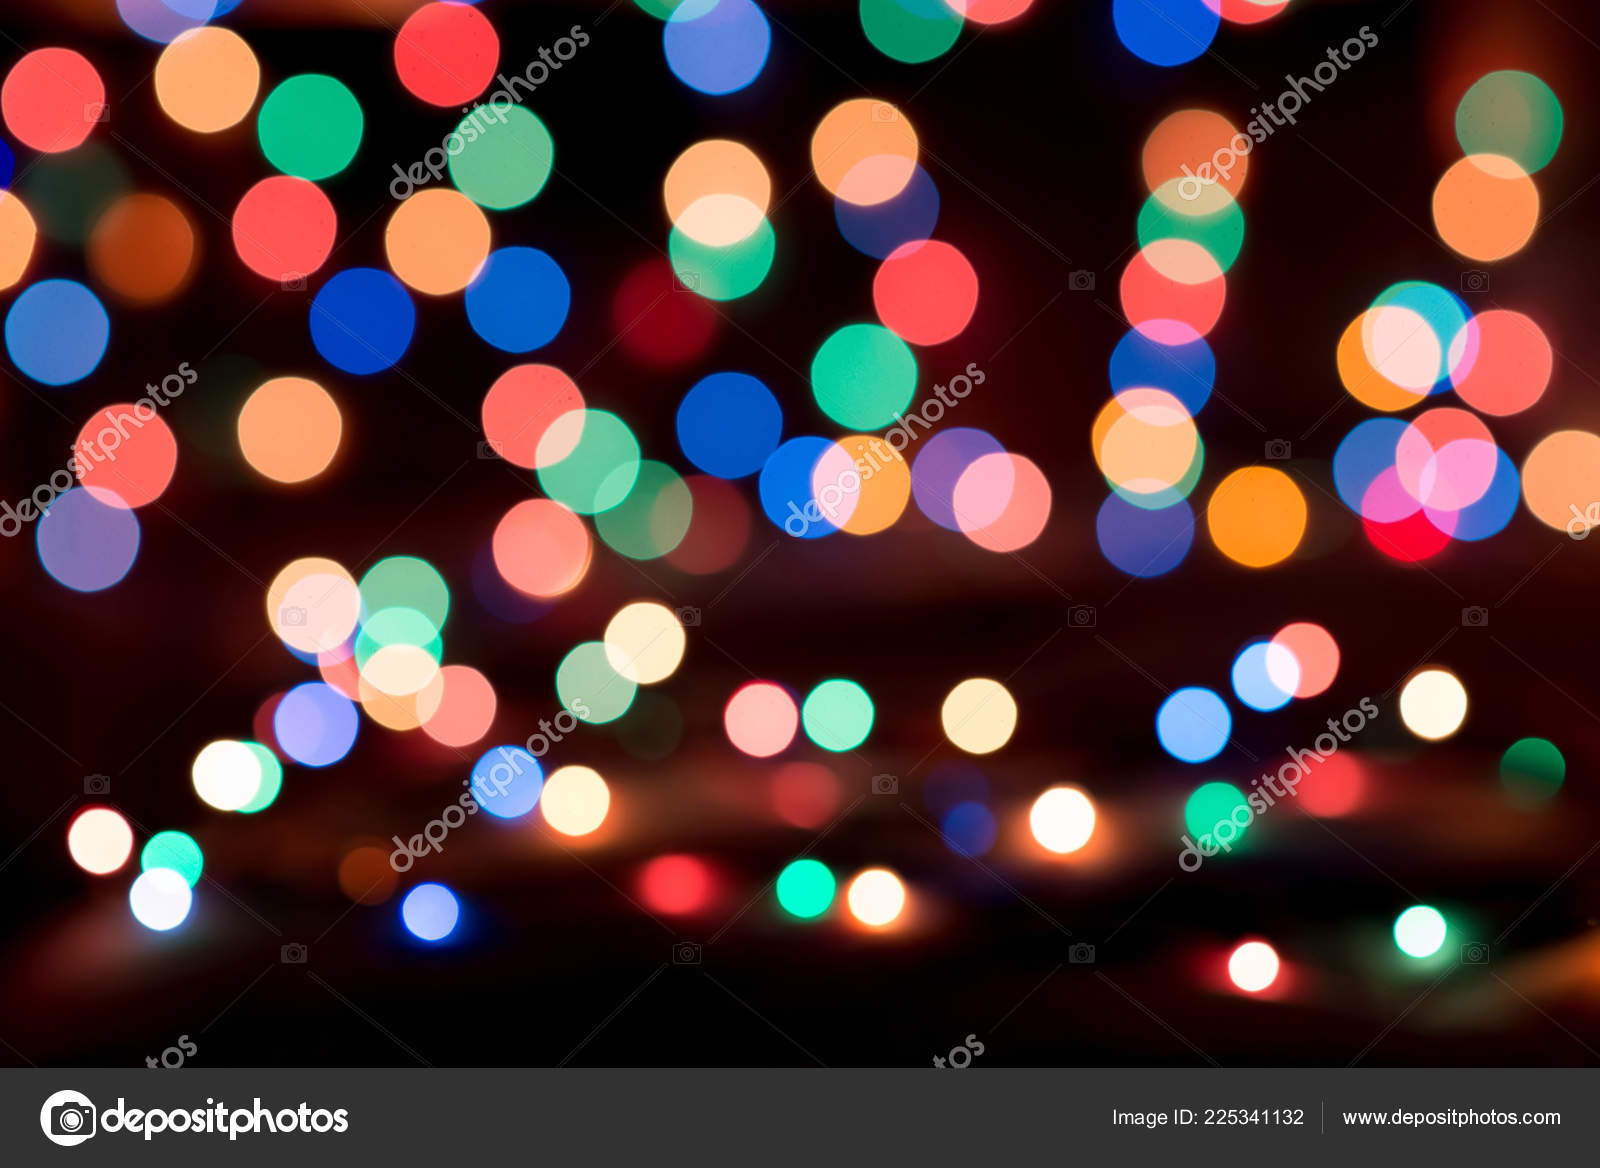 Colorful Christmas Lights Background.Colorful Christmas Lights Blurred Bokeh Background Stock